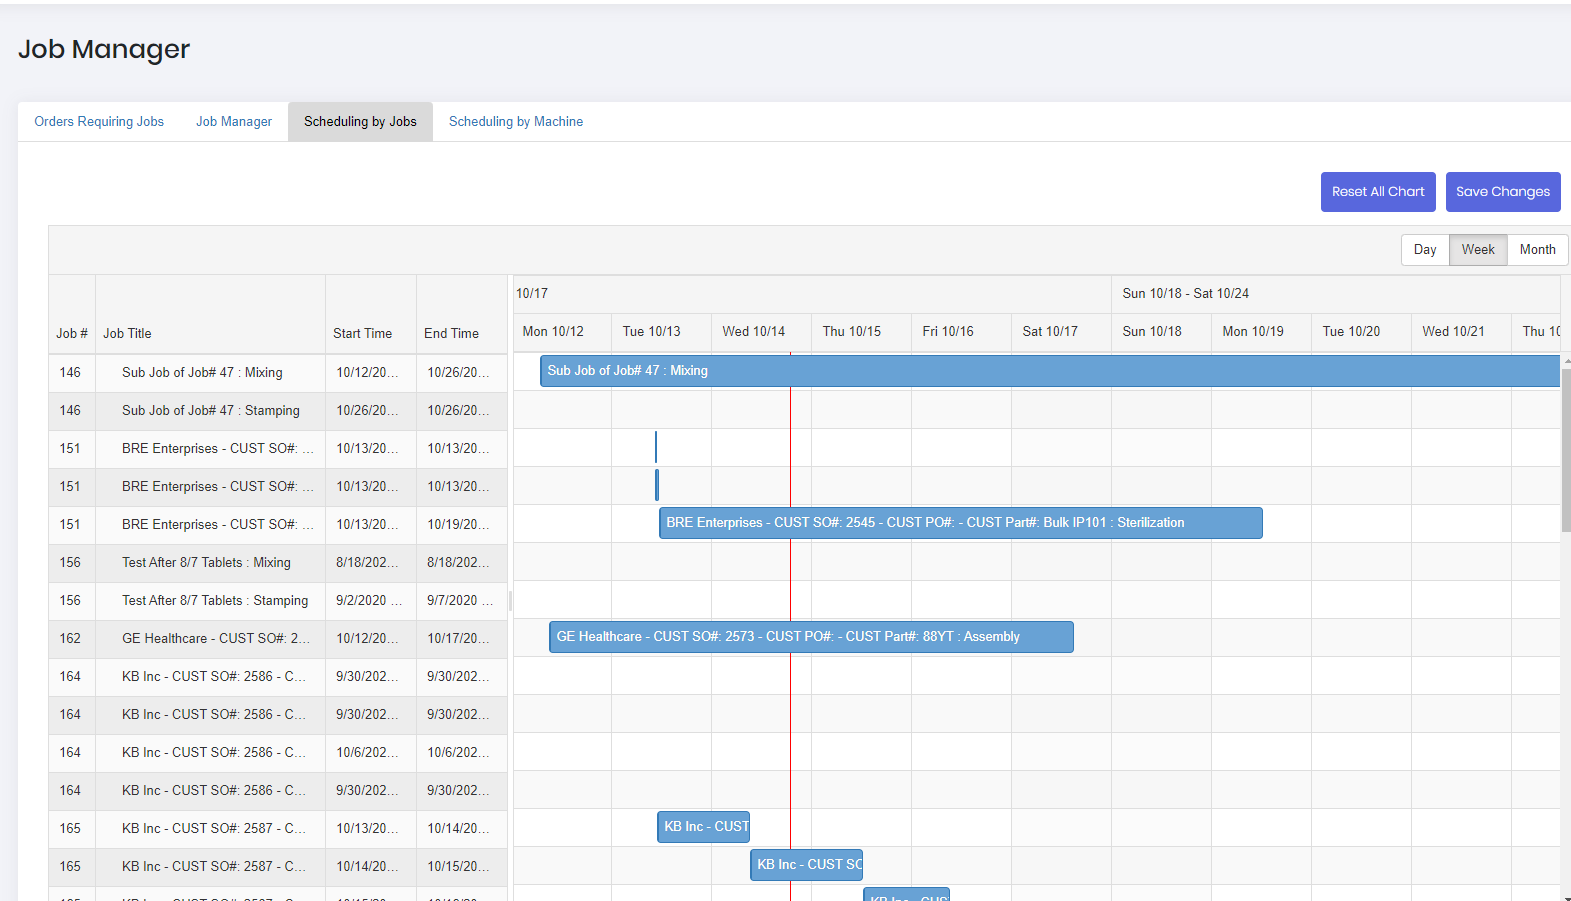 Job Manager - Real-Time Gantt Chart